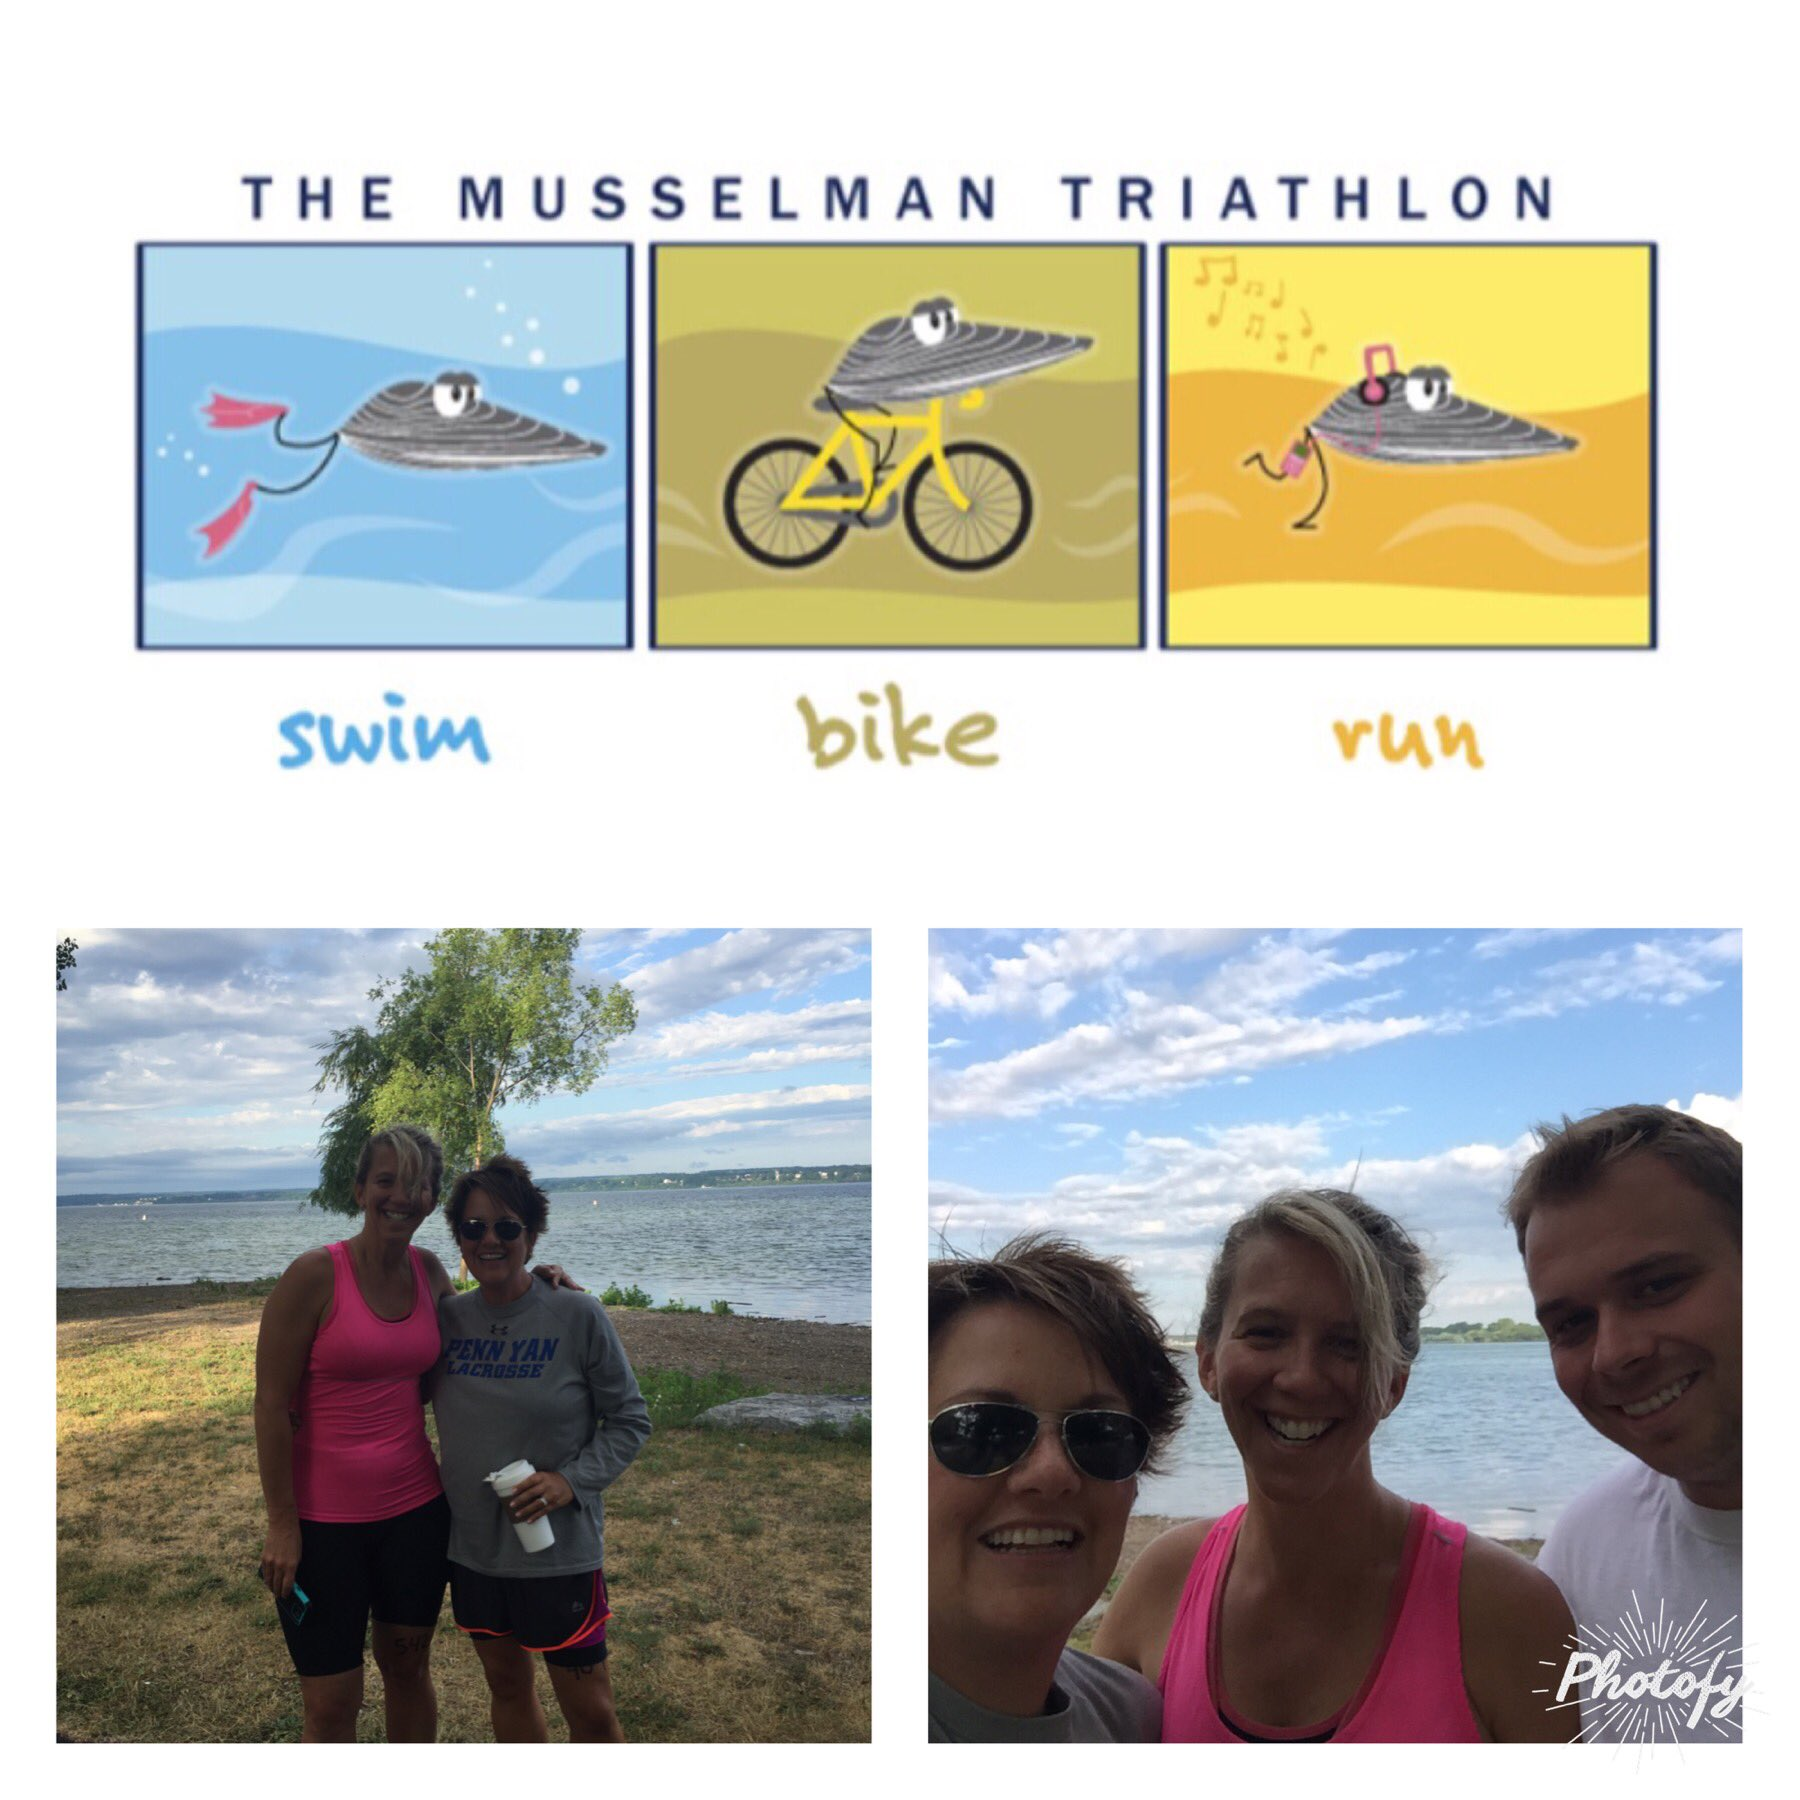 It's a great day to swim, bike and run! #Musselman2016 https://t.co/QEvAo7VXjh